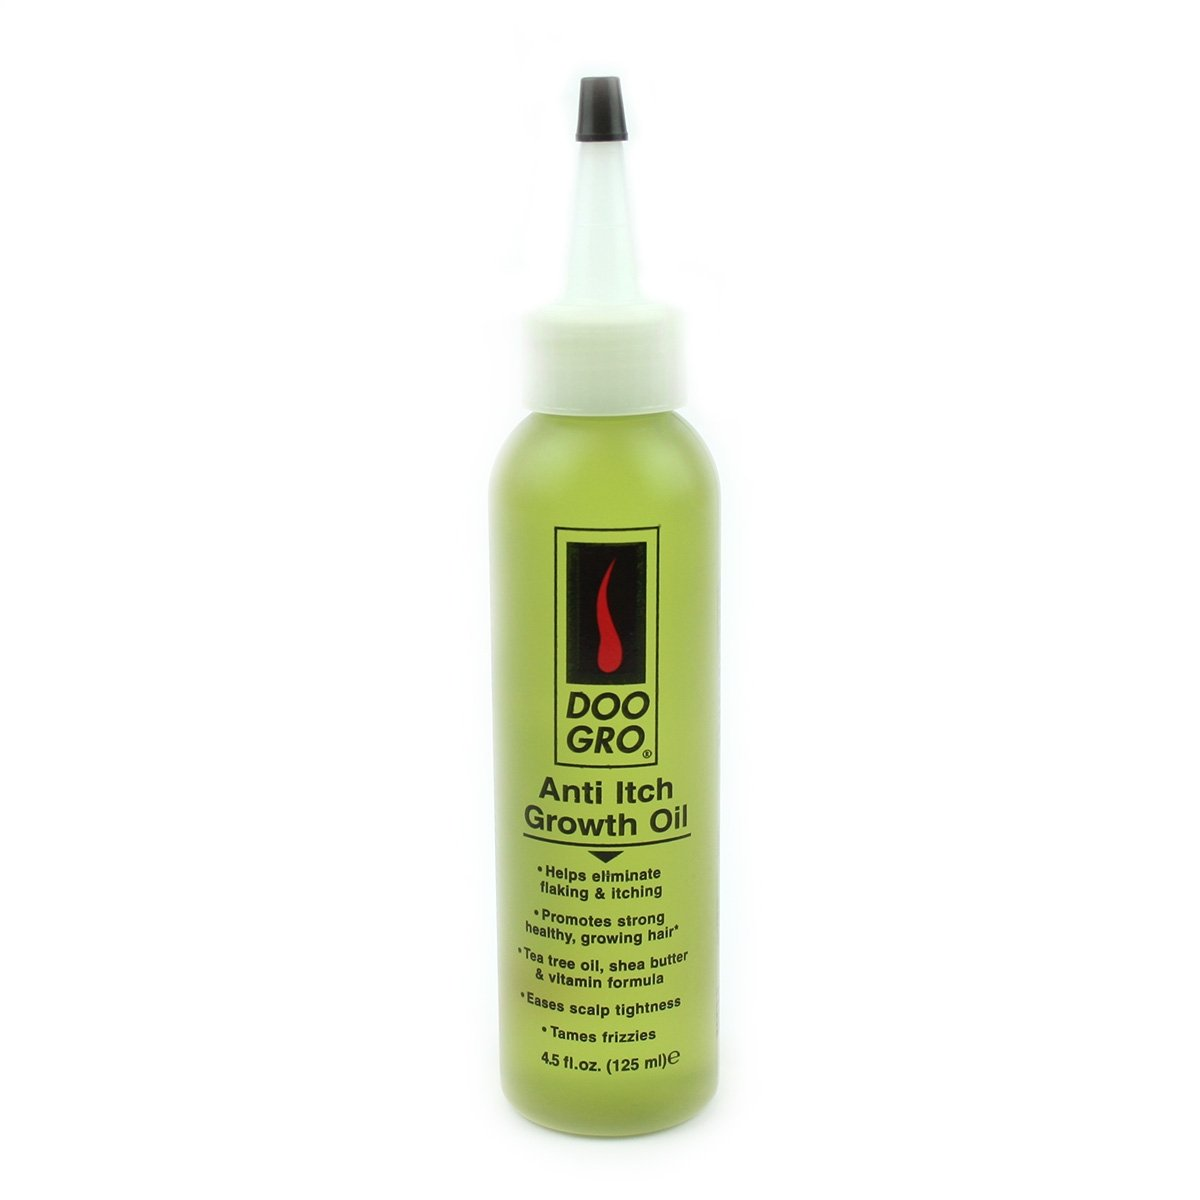 DOO GRO Anti-Itch Growth Oil, 4.5 oz